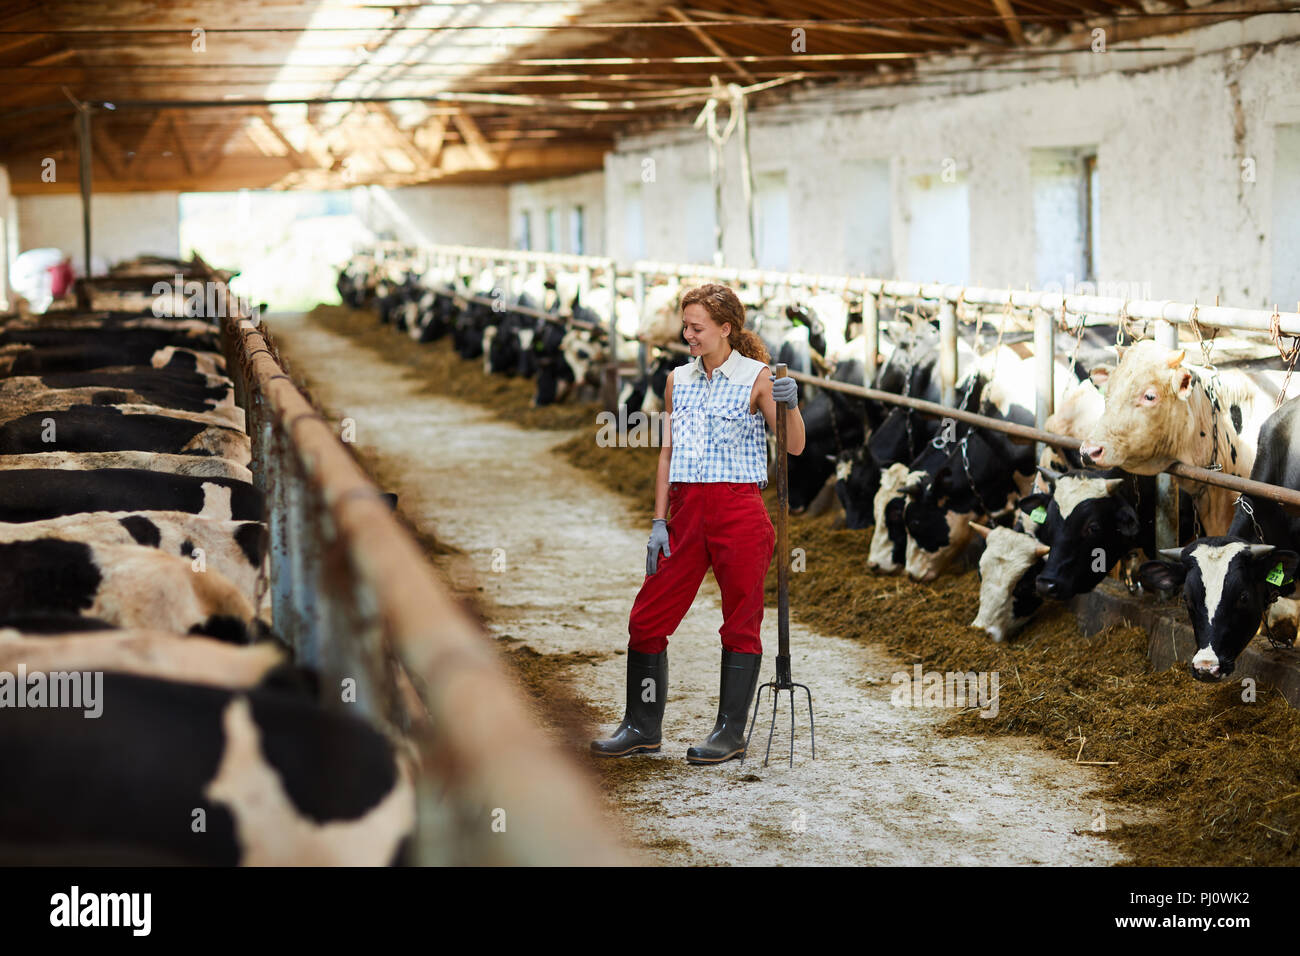 Woman in Cowshed Stock Photo: 217608358 Alamy